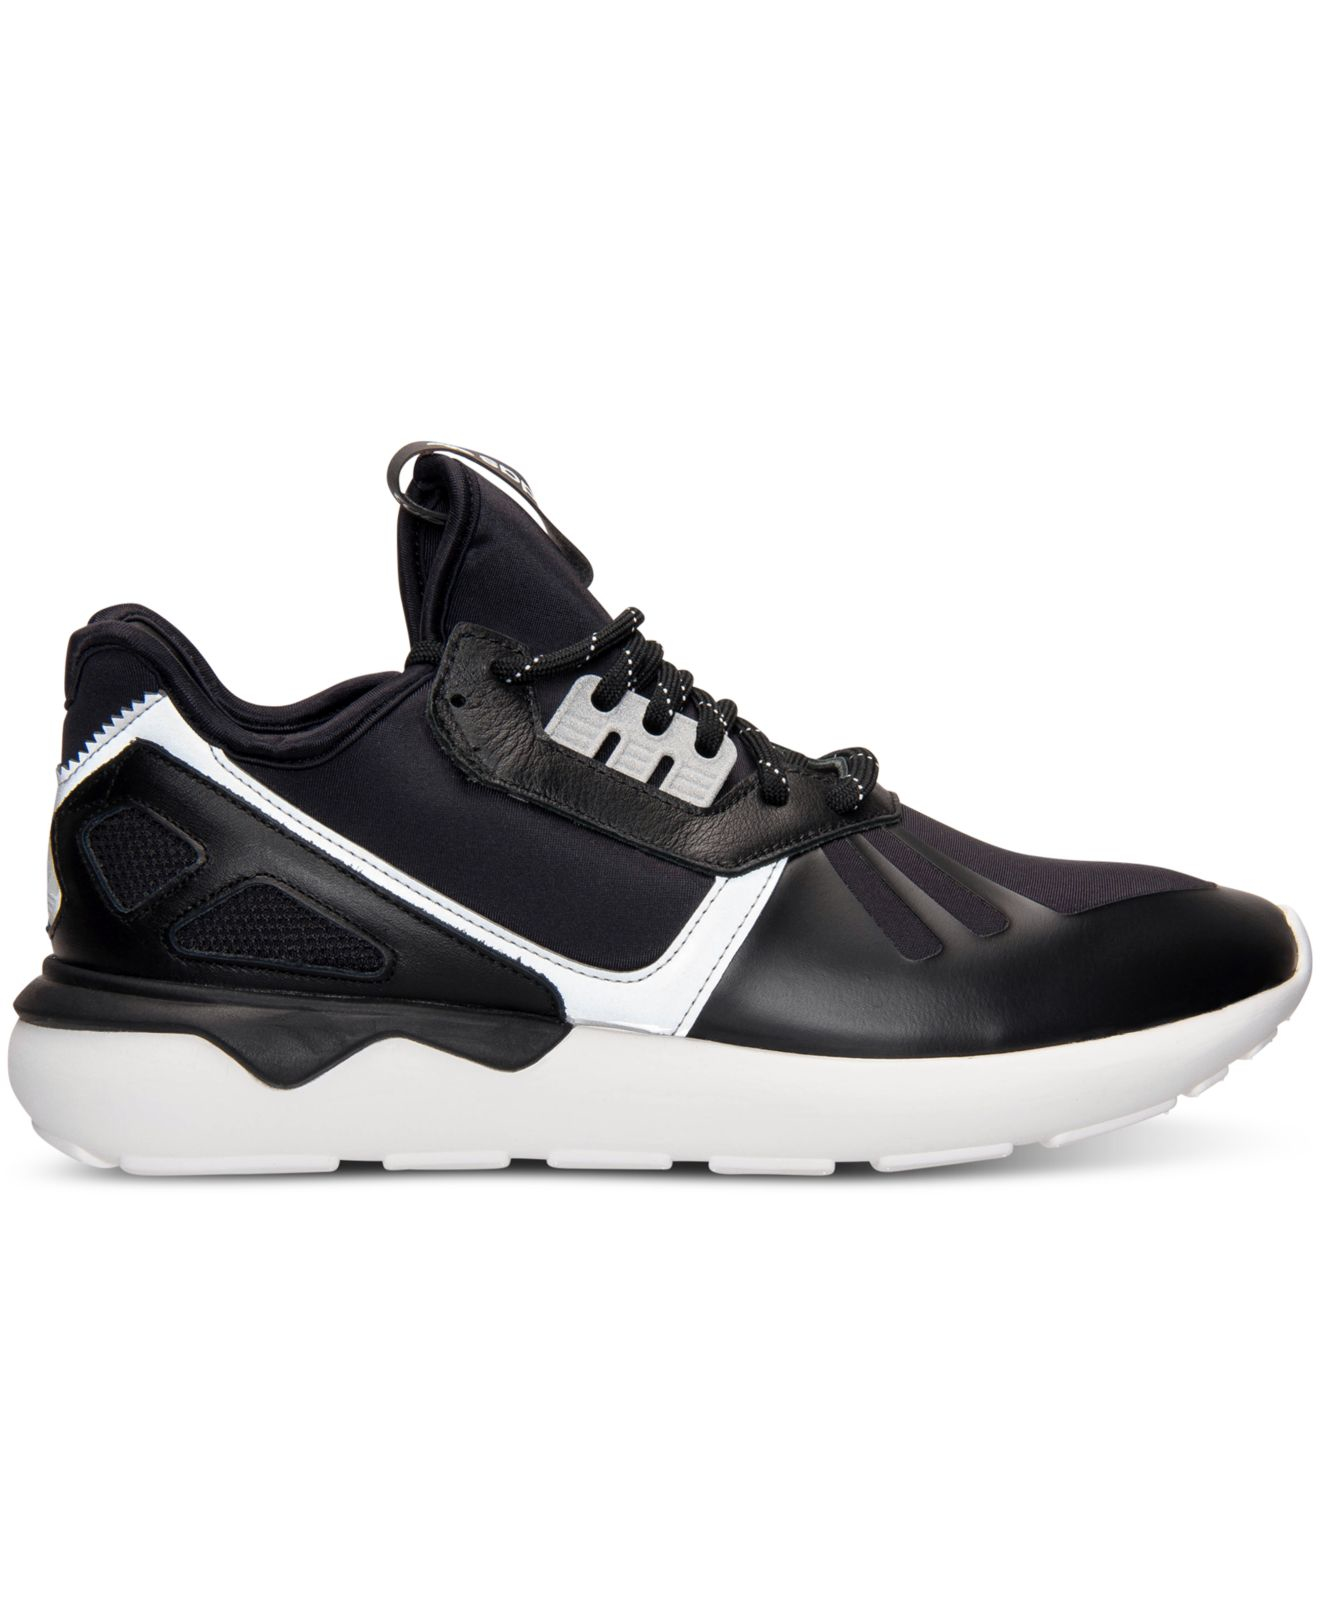 Tubular Defiant Lifestyle Shoes adidas US